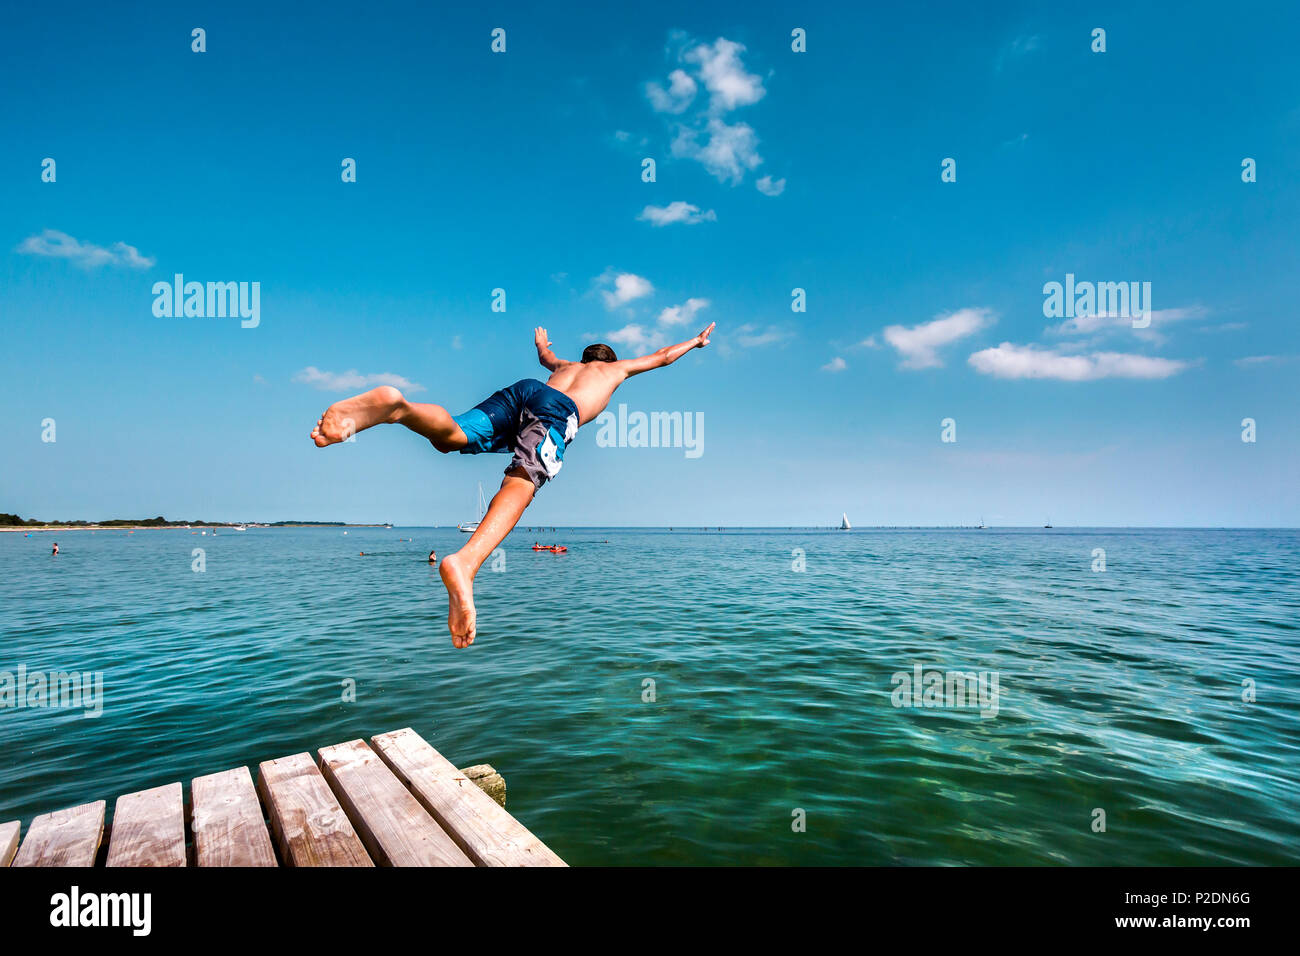 Boy diving à partir d'un quai, South Beach, l'île de Fehmarn Burgtiefe,, côte de la mer Baltique, Schleswig-Holstein, Allemagne Photo Stock